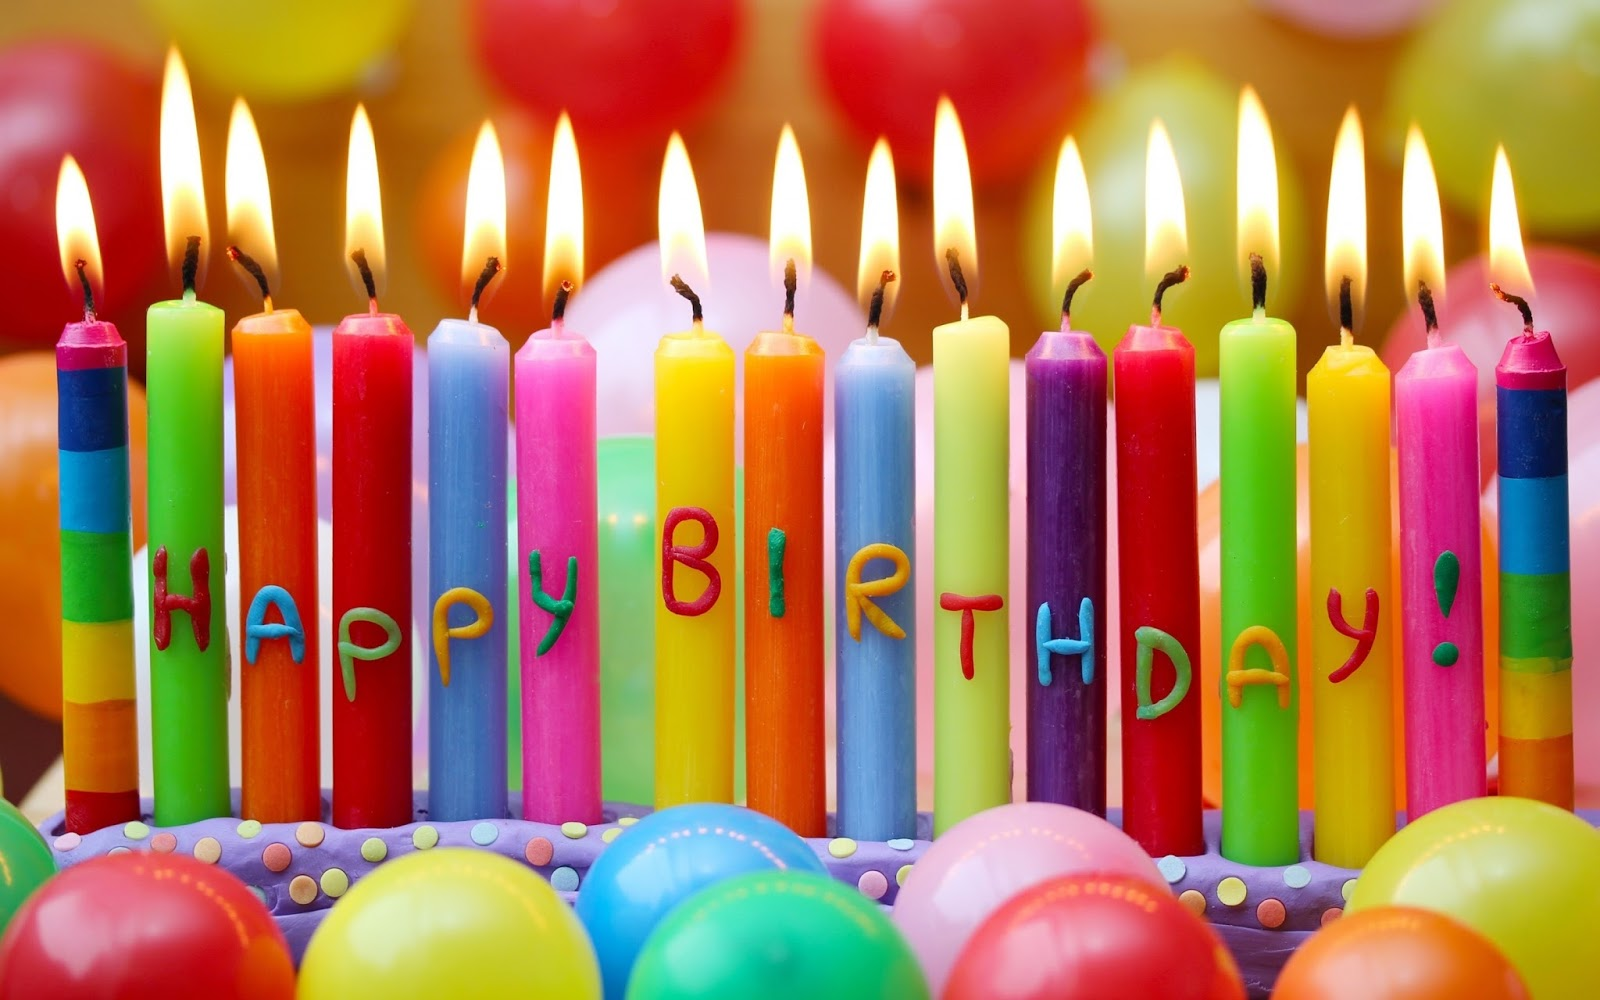 A Hd Wallpapers Happy Birthday Hd Wallpapers Birthday Wishes Full